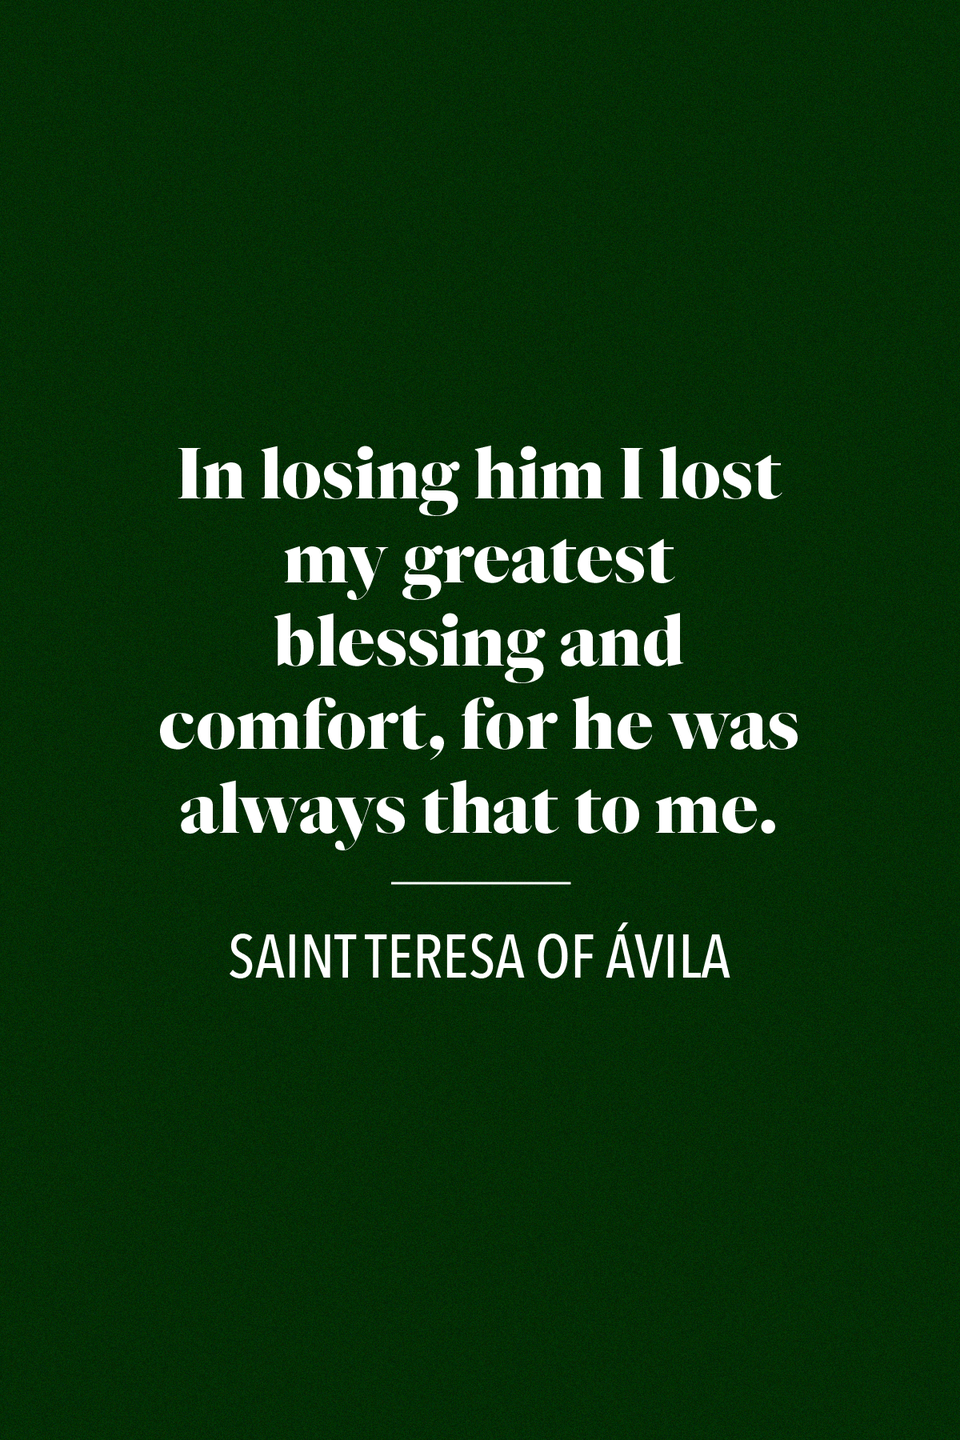 "<p>Saint Teresa of Ávila, a Catholic reformer who lived in the 1500s, spoke of losing her father <a href=""https://books.google.com/books?id=i6u6BwAAQBAJ&pg=PA44&lpg=PA44&dq=Teresa+of+Avila+in+losing+him+I+lost+my+greatest+blessing&source=bl&ots=99gkm6ZqUw&sig=ACfU3U3P7UFectrDcKuVHT0g-t0A-FW7IQ&hl=en&sa=X&ved=2ahUKEwjd2Zar-e3pAhWIlnIEHR6LAyYQ6AEwAHoECAcQAQ#v=onepage&q=Teresa%20of%20Avila%20in%20losing%20him%20I%20lost%20my%20greatest%20blessing&f=false"" rel=""nofollow noopener"" target=""_blank"" data-ylk=""slk:in a book of her collected works"" class=""link rapid-noclick-resp"">in a book of her collected works</a>, ""[On her father:] ... in losing him I lost my greatest blessing and comfort, for he was always that to me.""</p>"